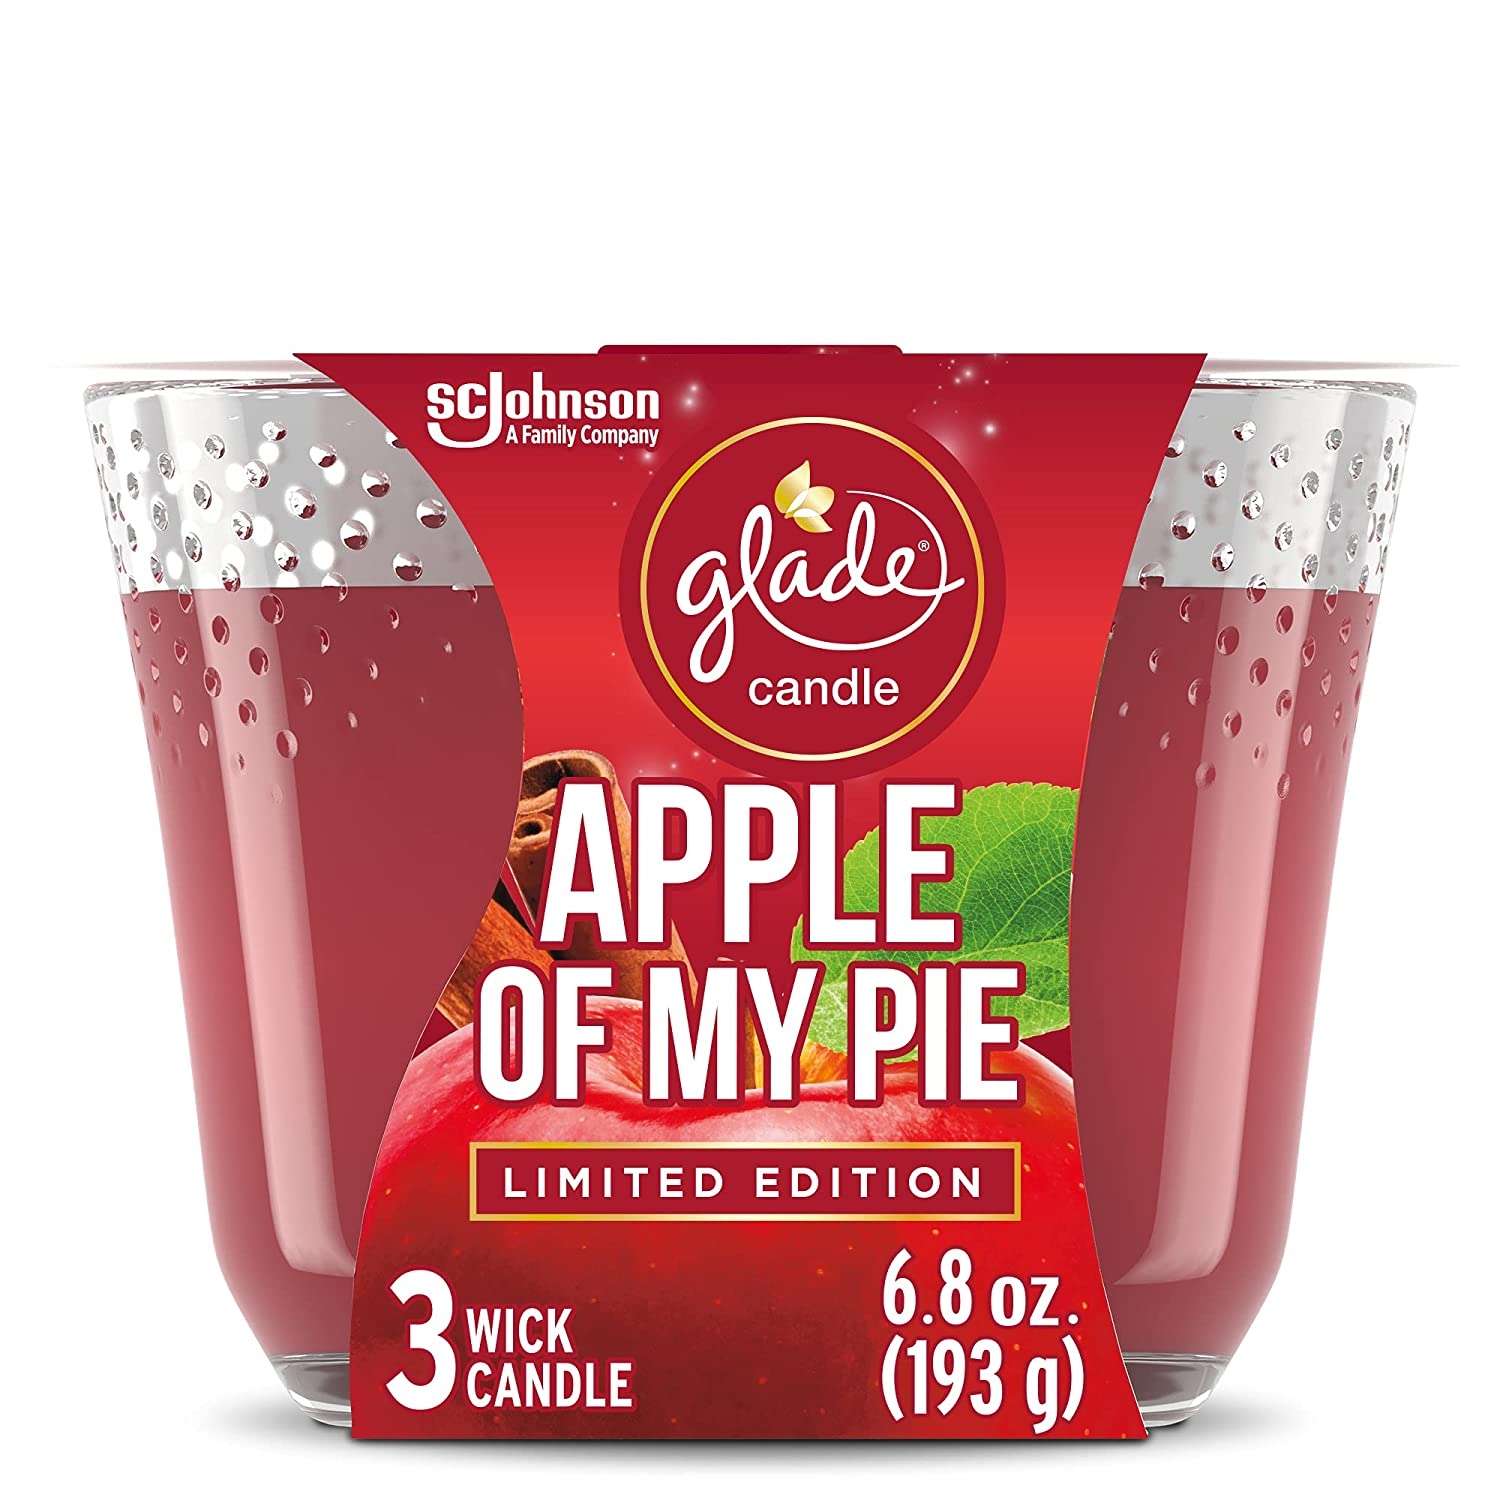 Glade Candle Apple of My Pie, Fragrance Candle Infused with Essential Oils, Air Freshener Candle, 3-Wick Candle, 6.8oz, 3 Count